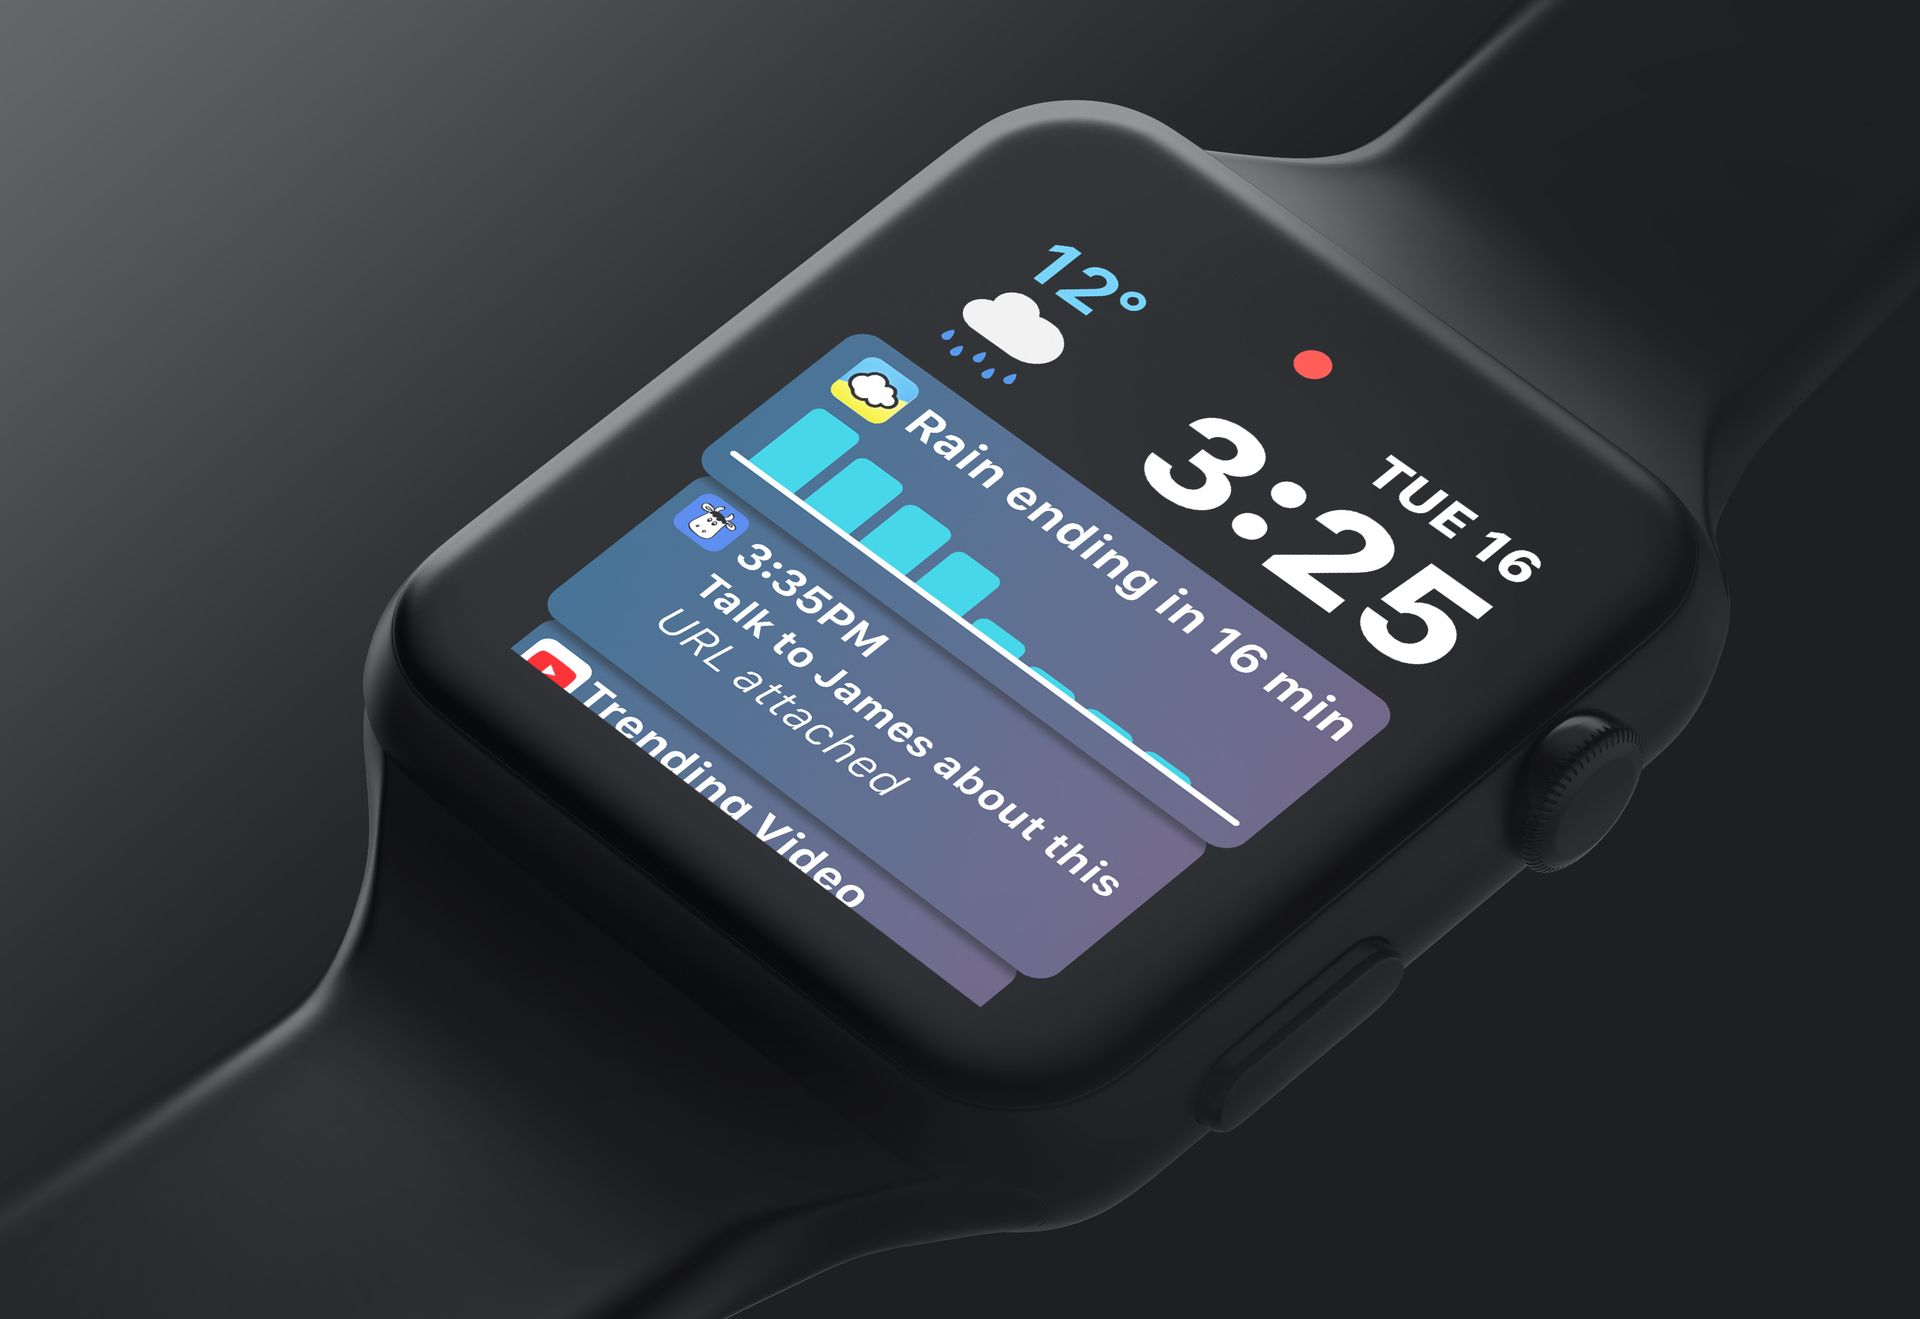 watchOS 5: A Relatively Modest Proposal